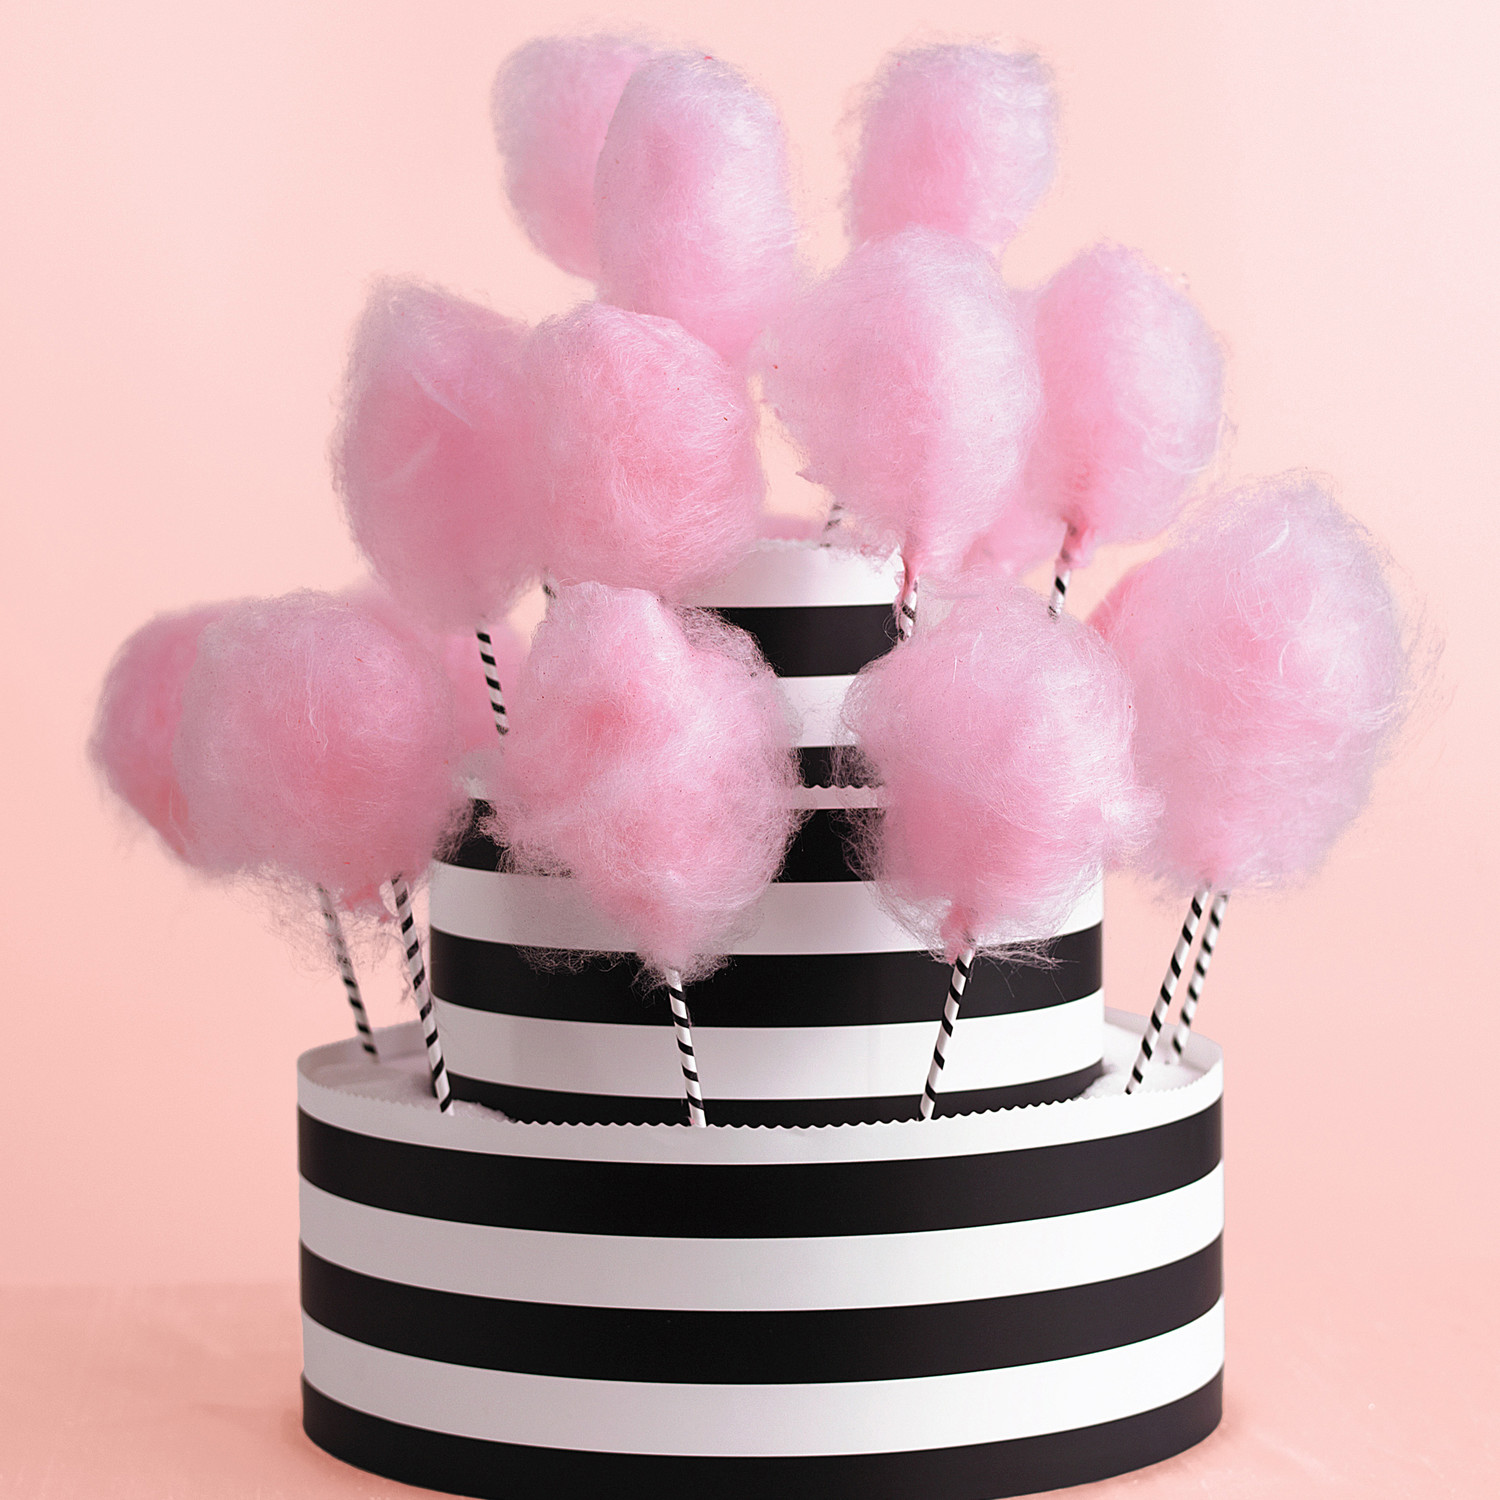 creative ways to incorporate black, white, and pink into your